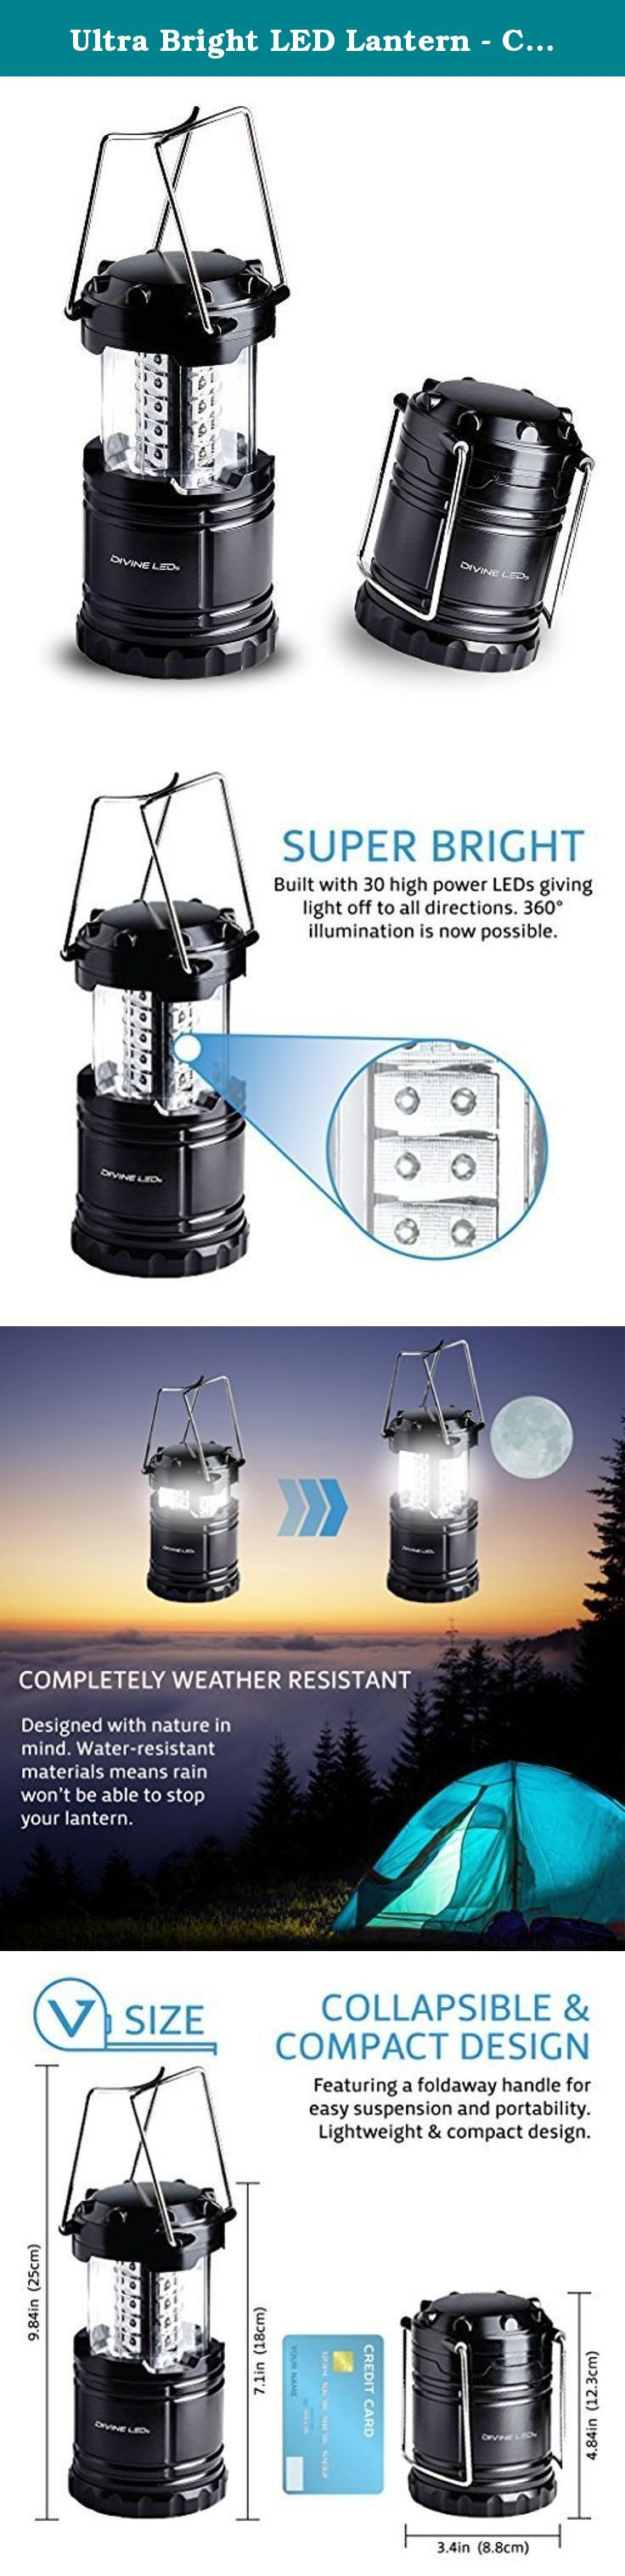 Ultra Bright LED Lantern - Camping Lantern - for Hiking, Emergencies, Hurricanes, Outages, Storms, Camping - Multi Purpose - Black - Divine LEDs. Built with Divincible military grade materials, this multi-purpose LED lantern is perfect for all of your needs. Introducing the best LED Lantern on Amazon Divine LEDs has once again revolutionized the way LED lanterns are made. Hand crafted with maximum brightness, durability and battery life.... this lantern will keep you lit no matter what…